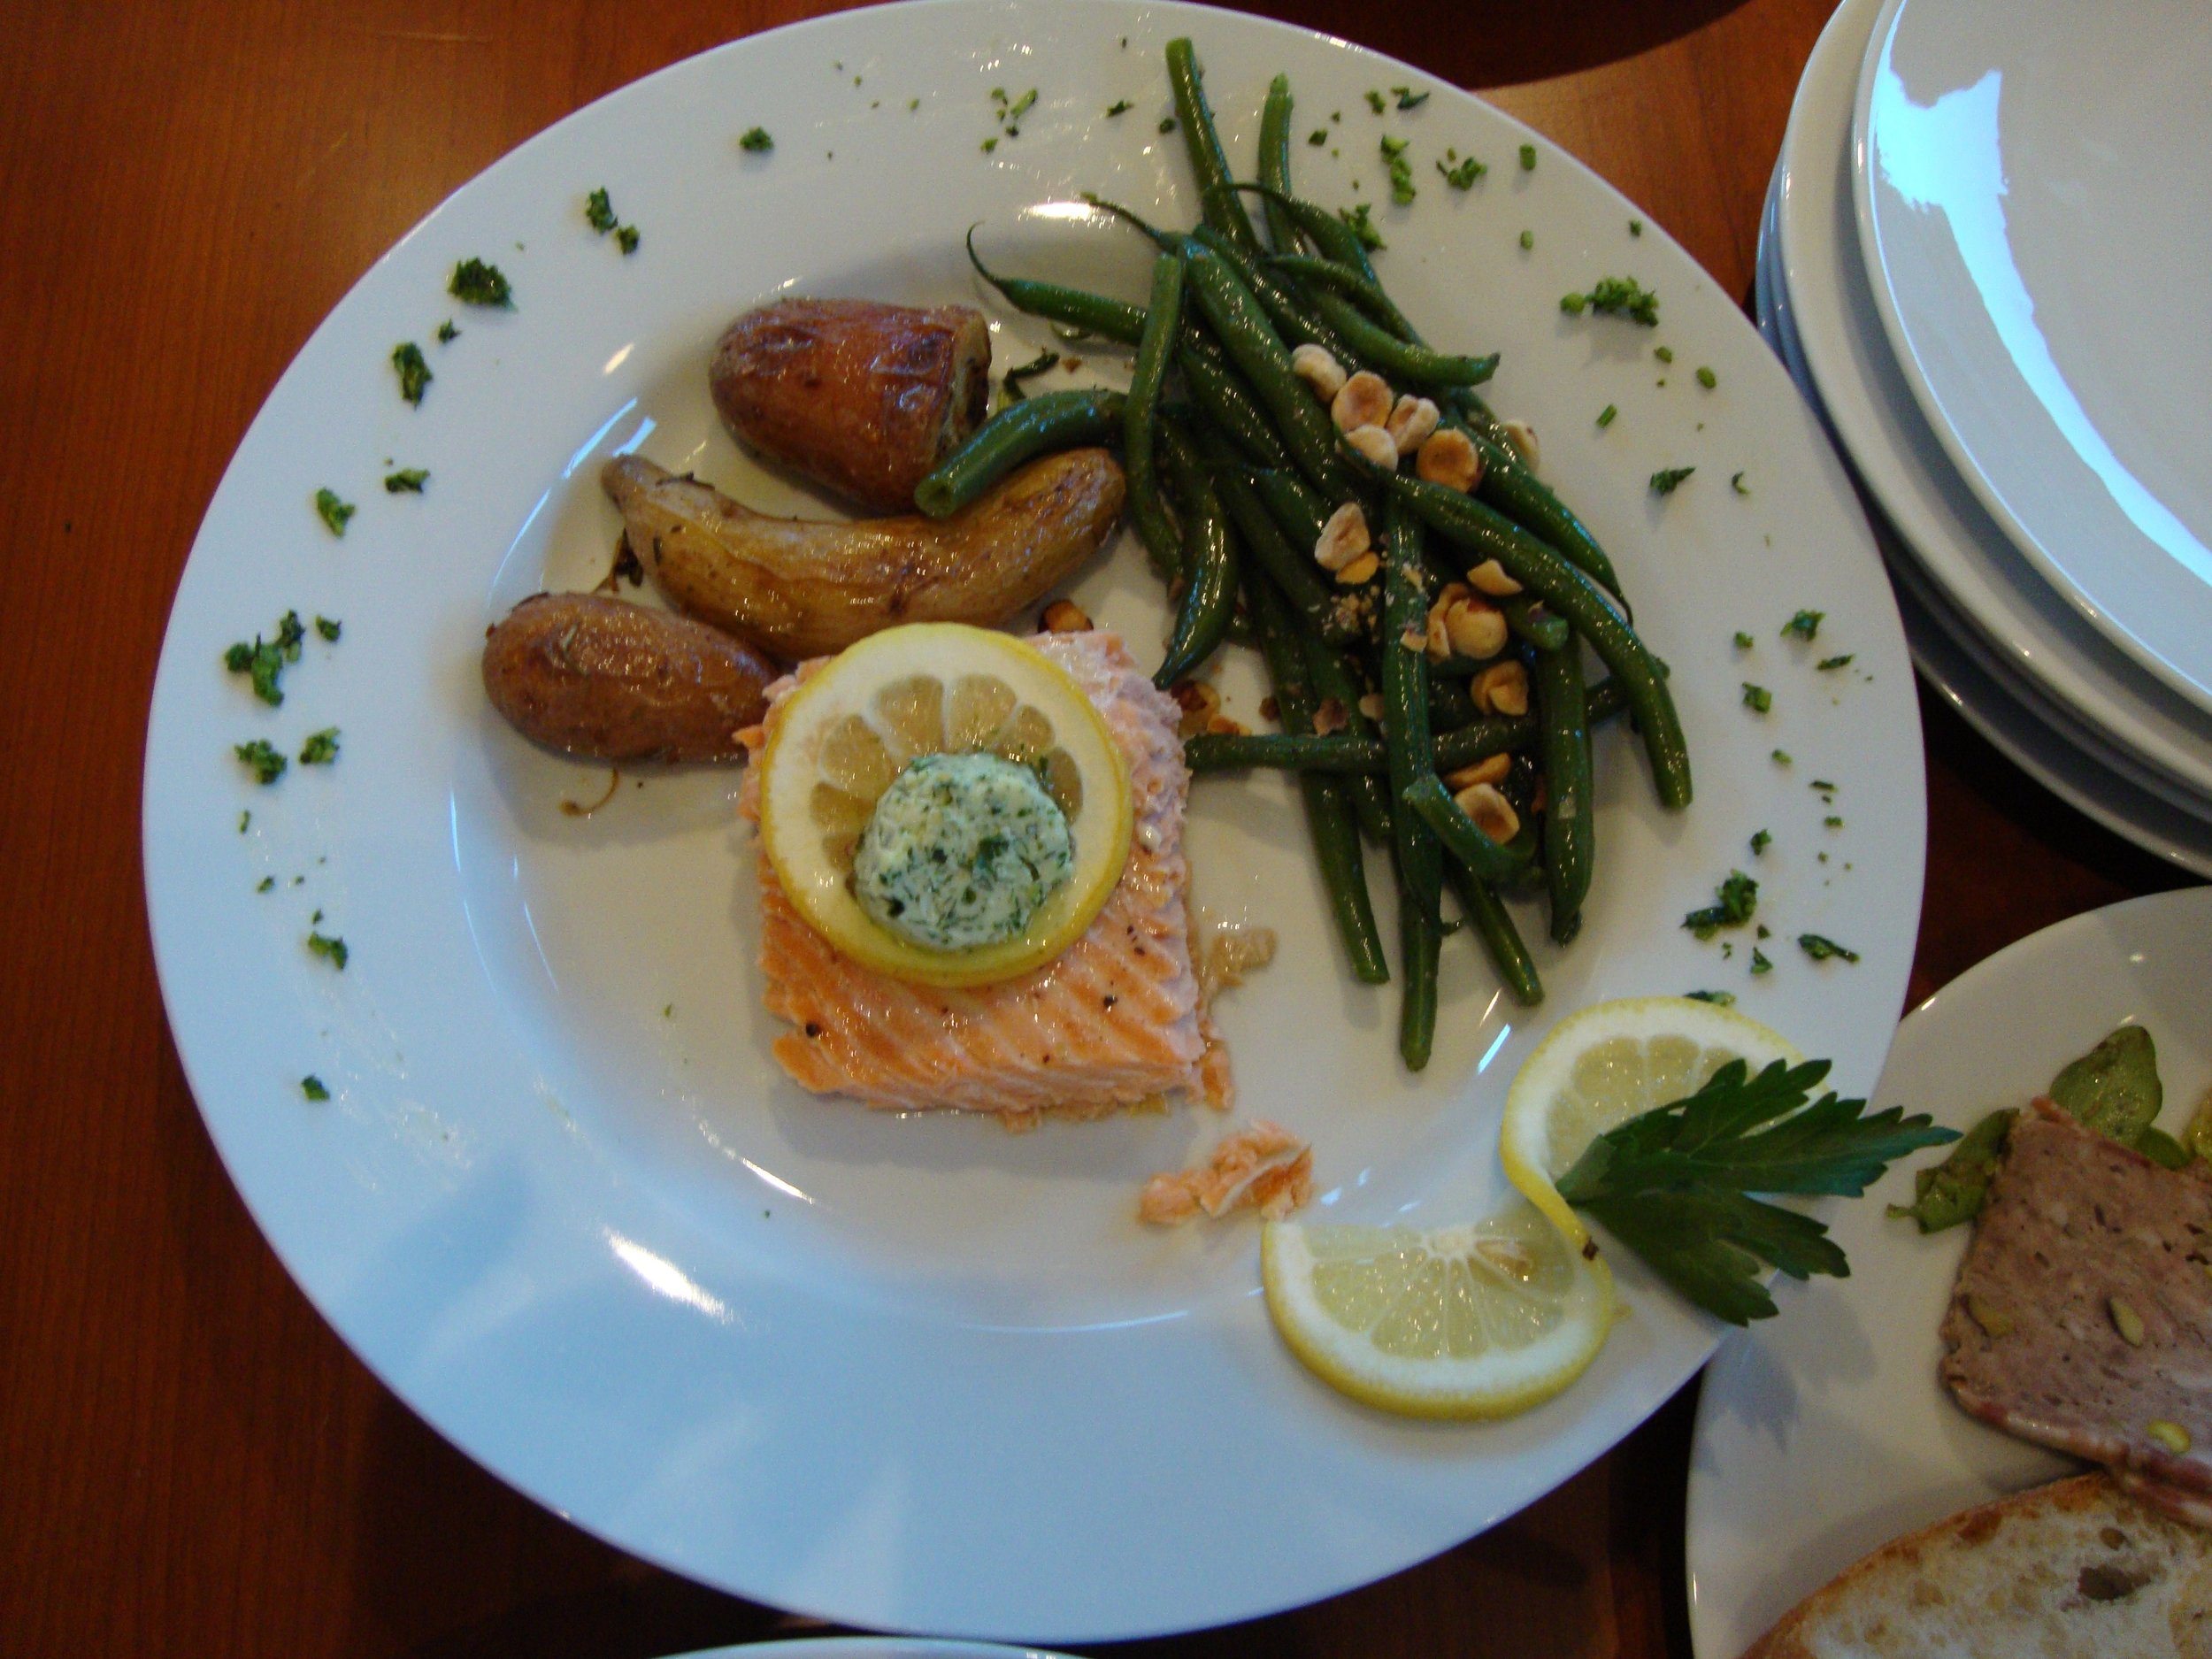 Dining Delivered. Salmon with herbed butter, fingerling potatoes, green beans with toasted hazelnuts.